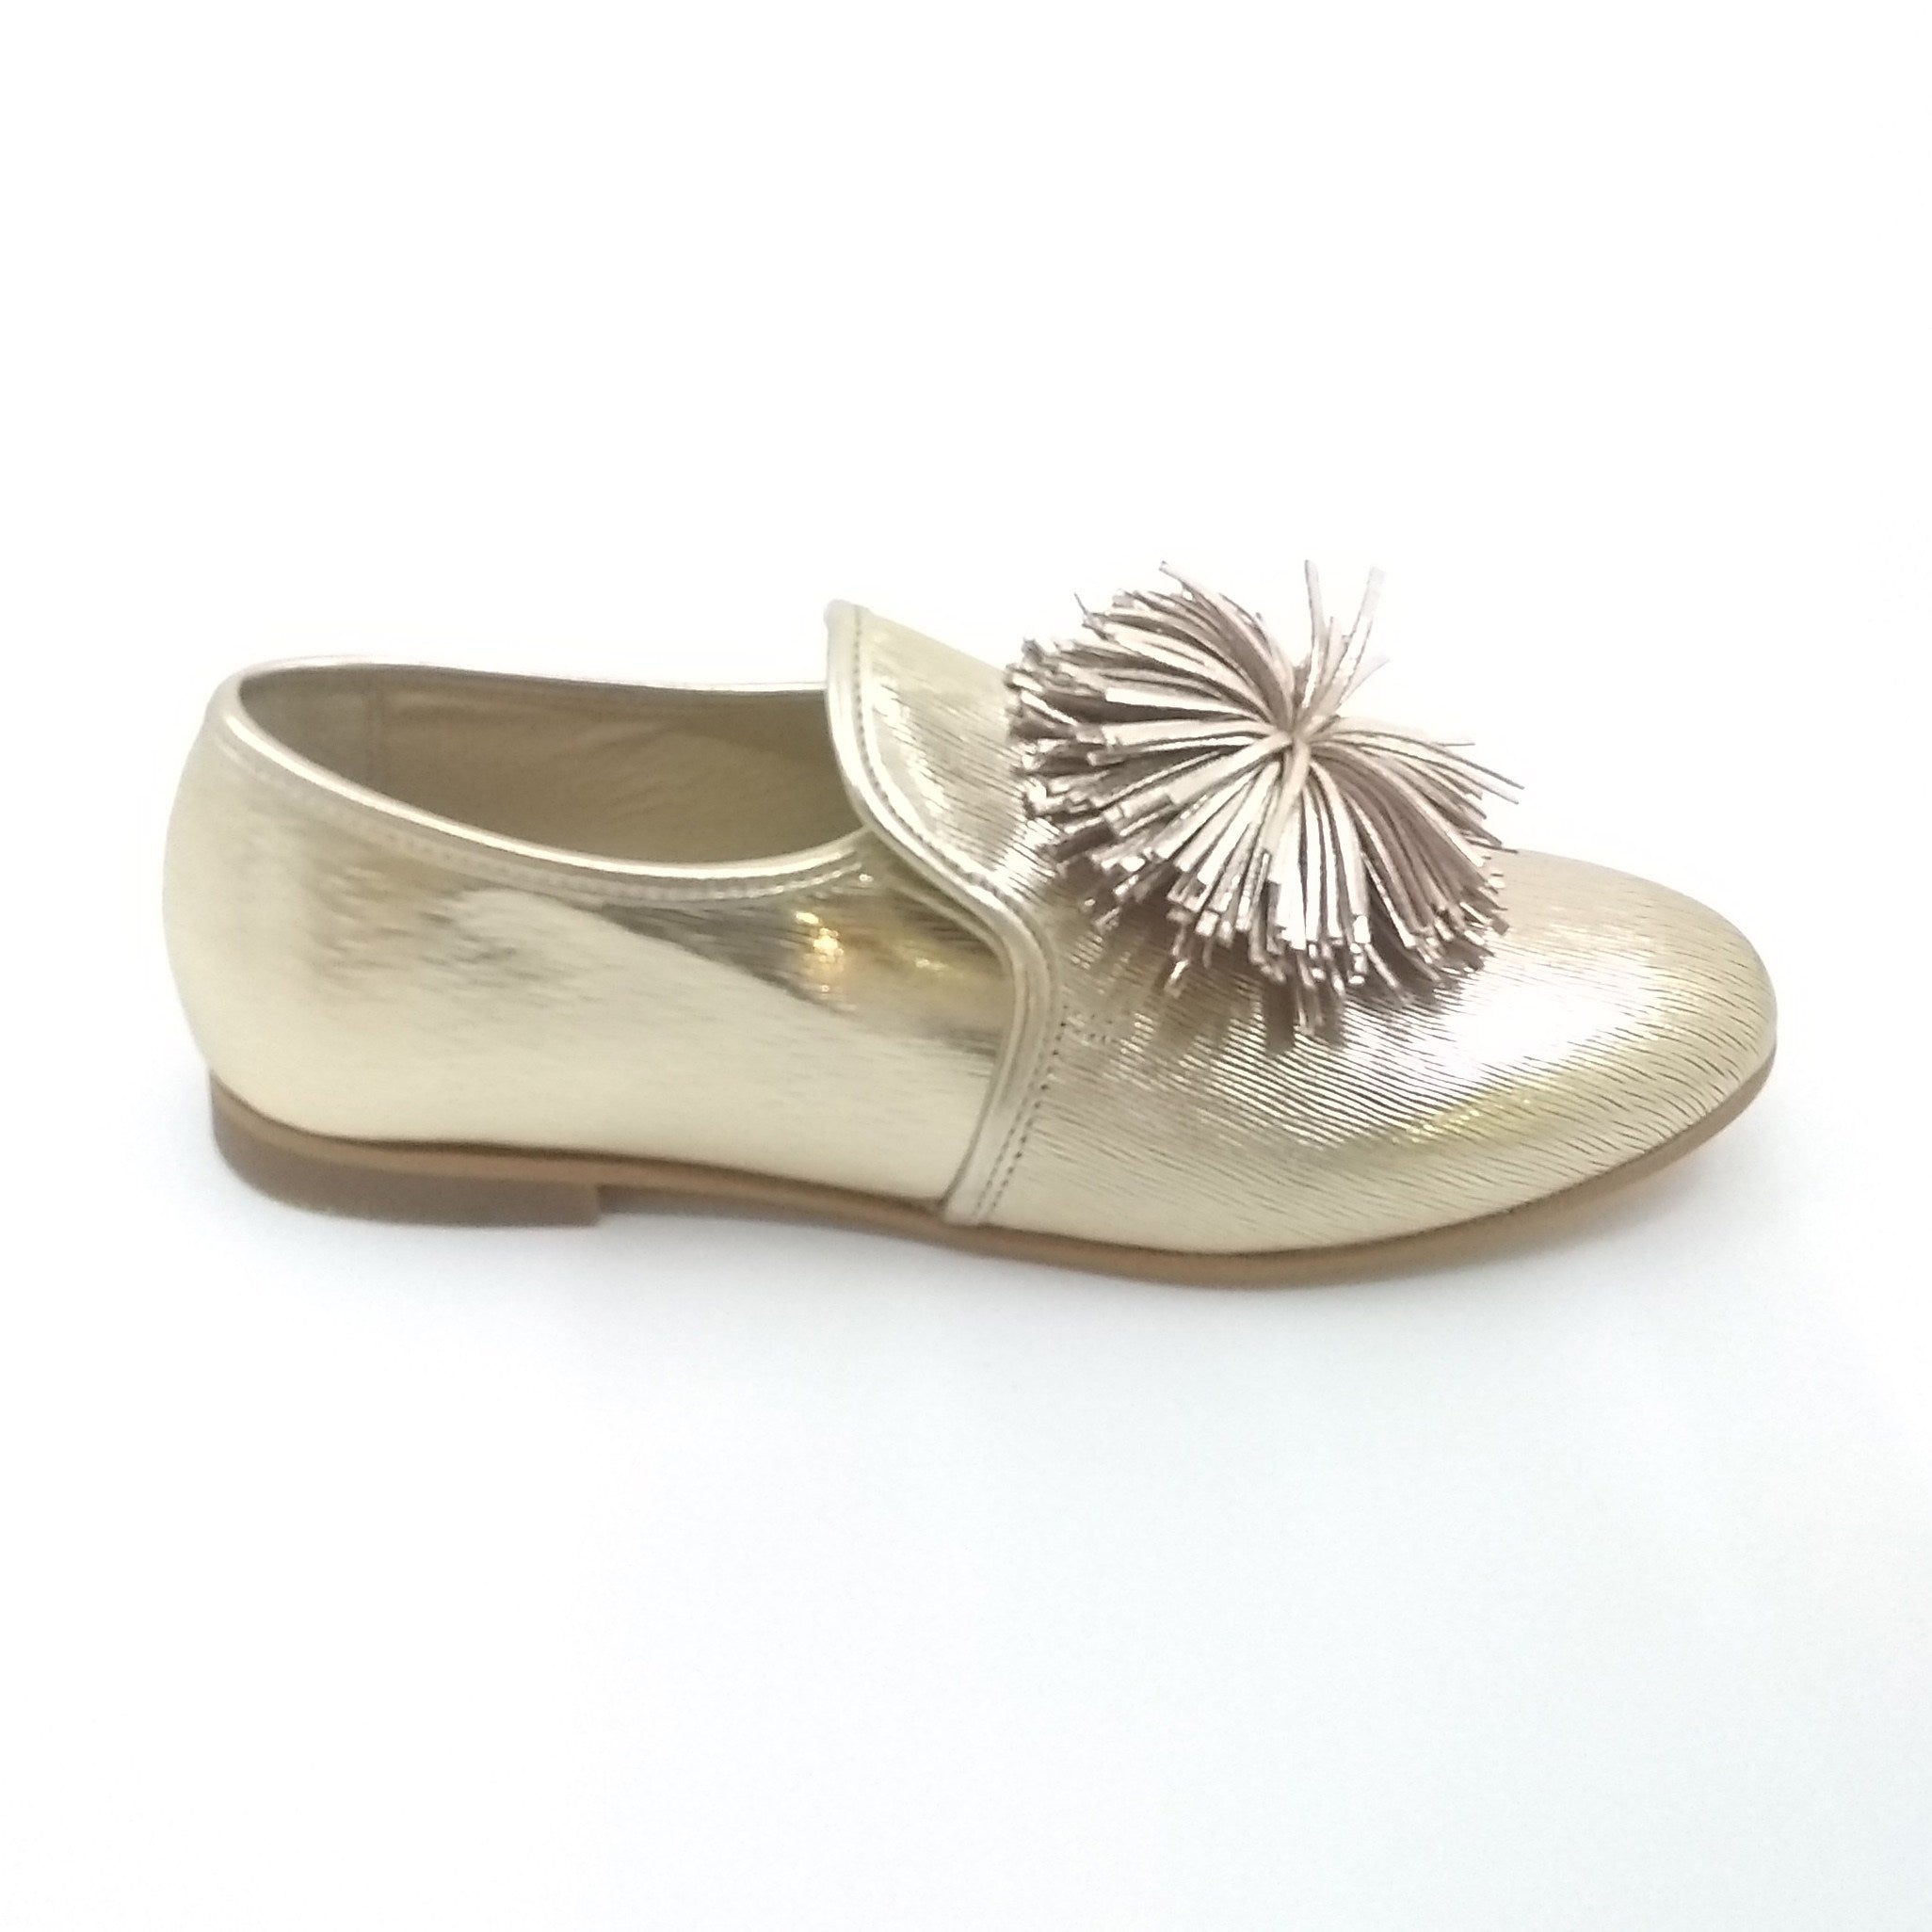 Luccini Gold Metalic Shoe with Pom Pom